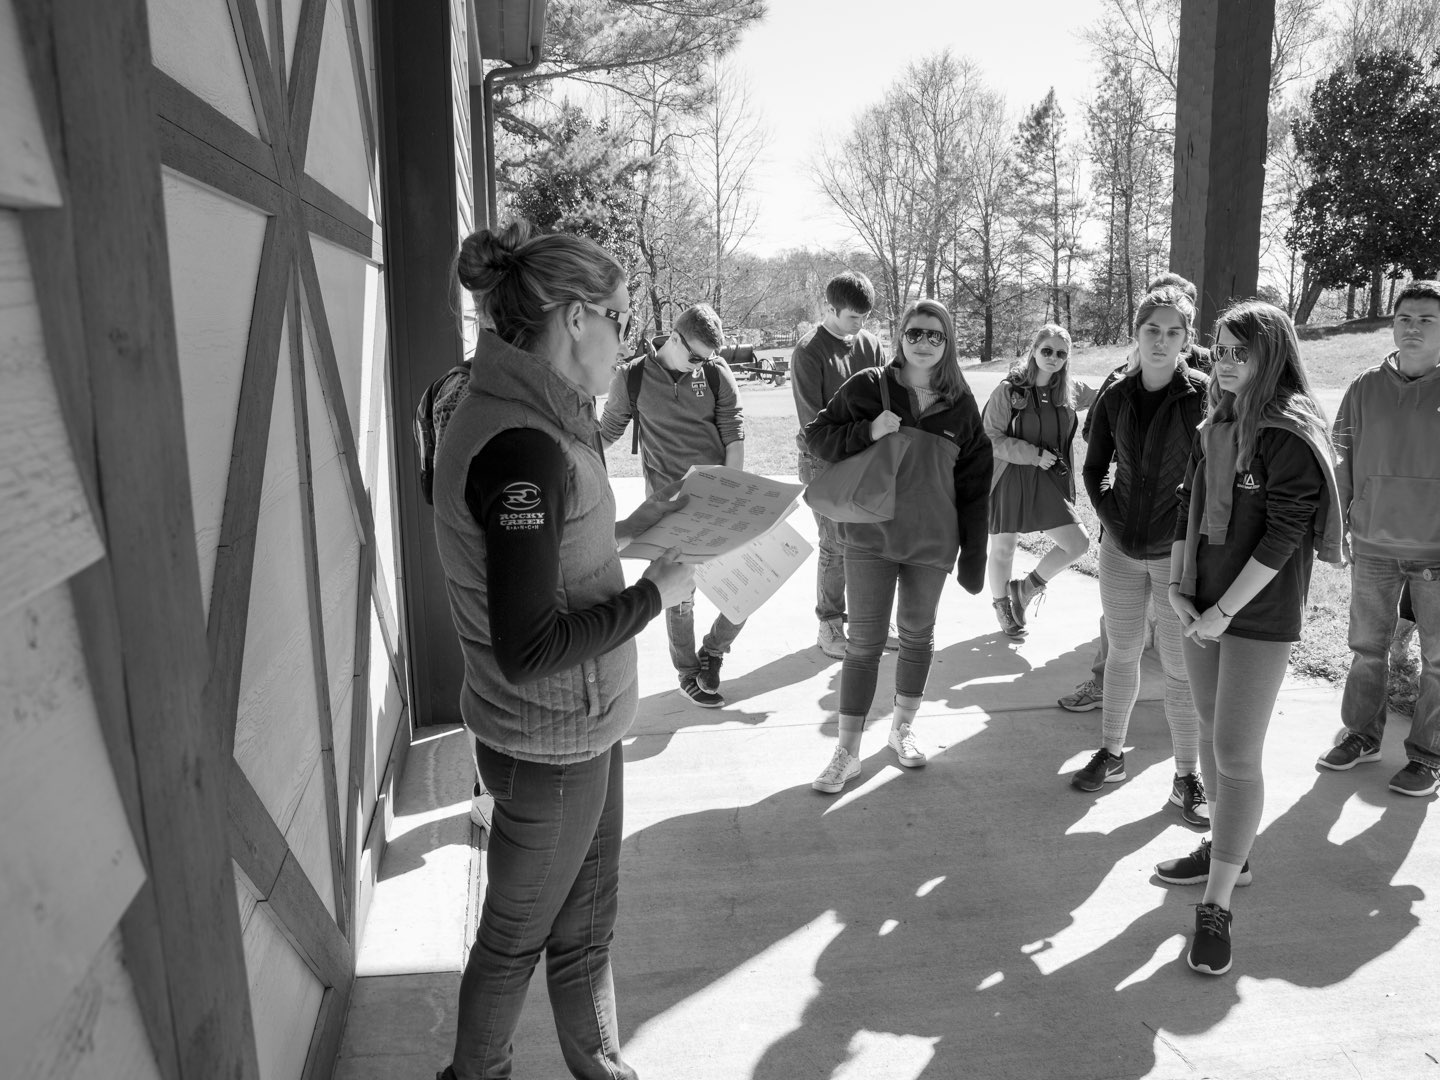 Black-and-white photo of students from Villanova's student group LEVEL.